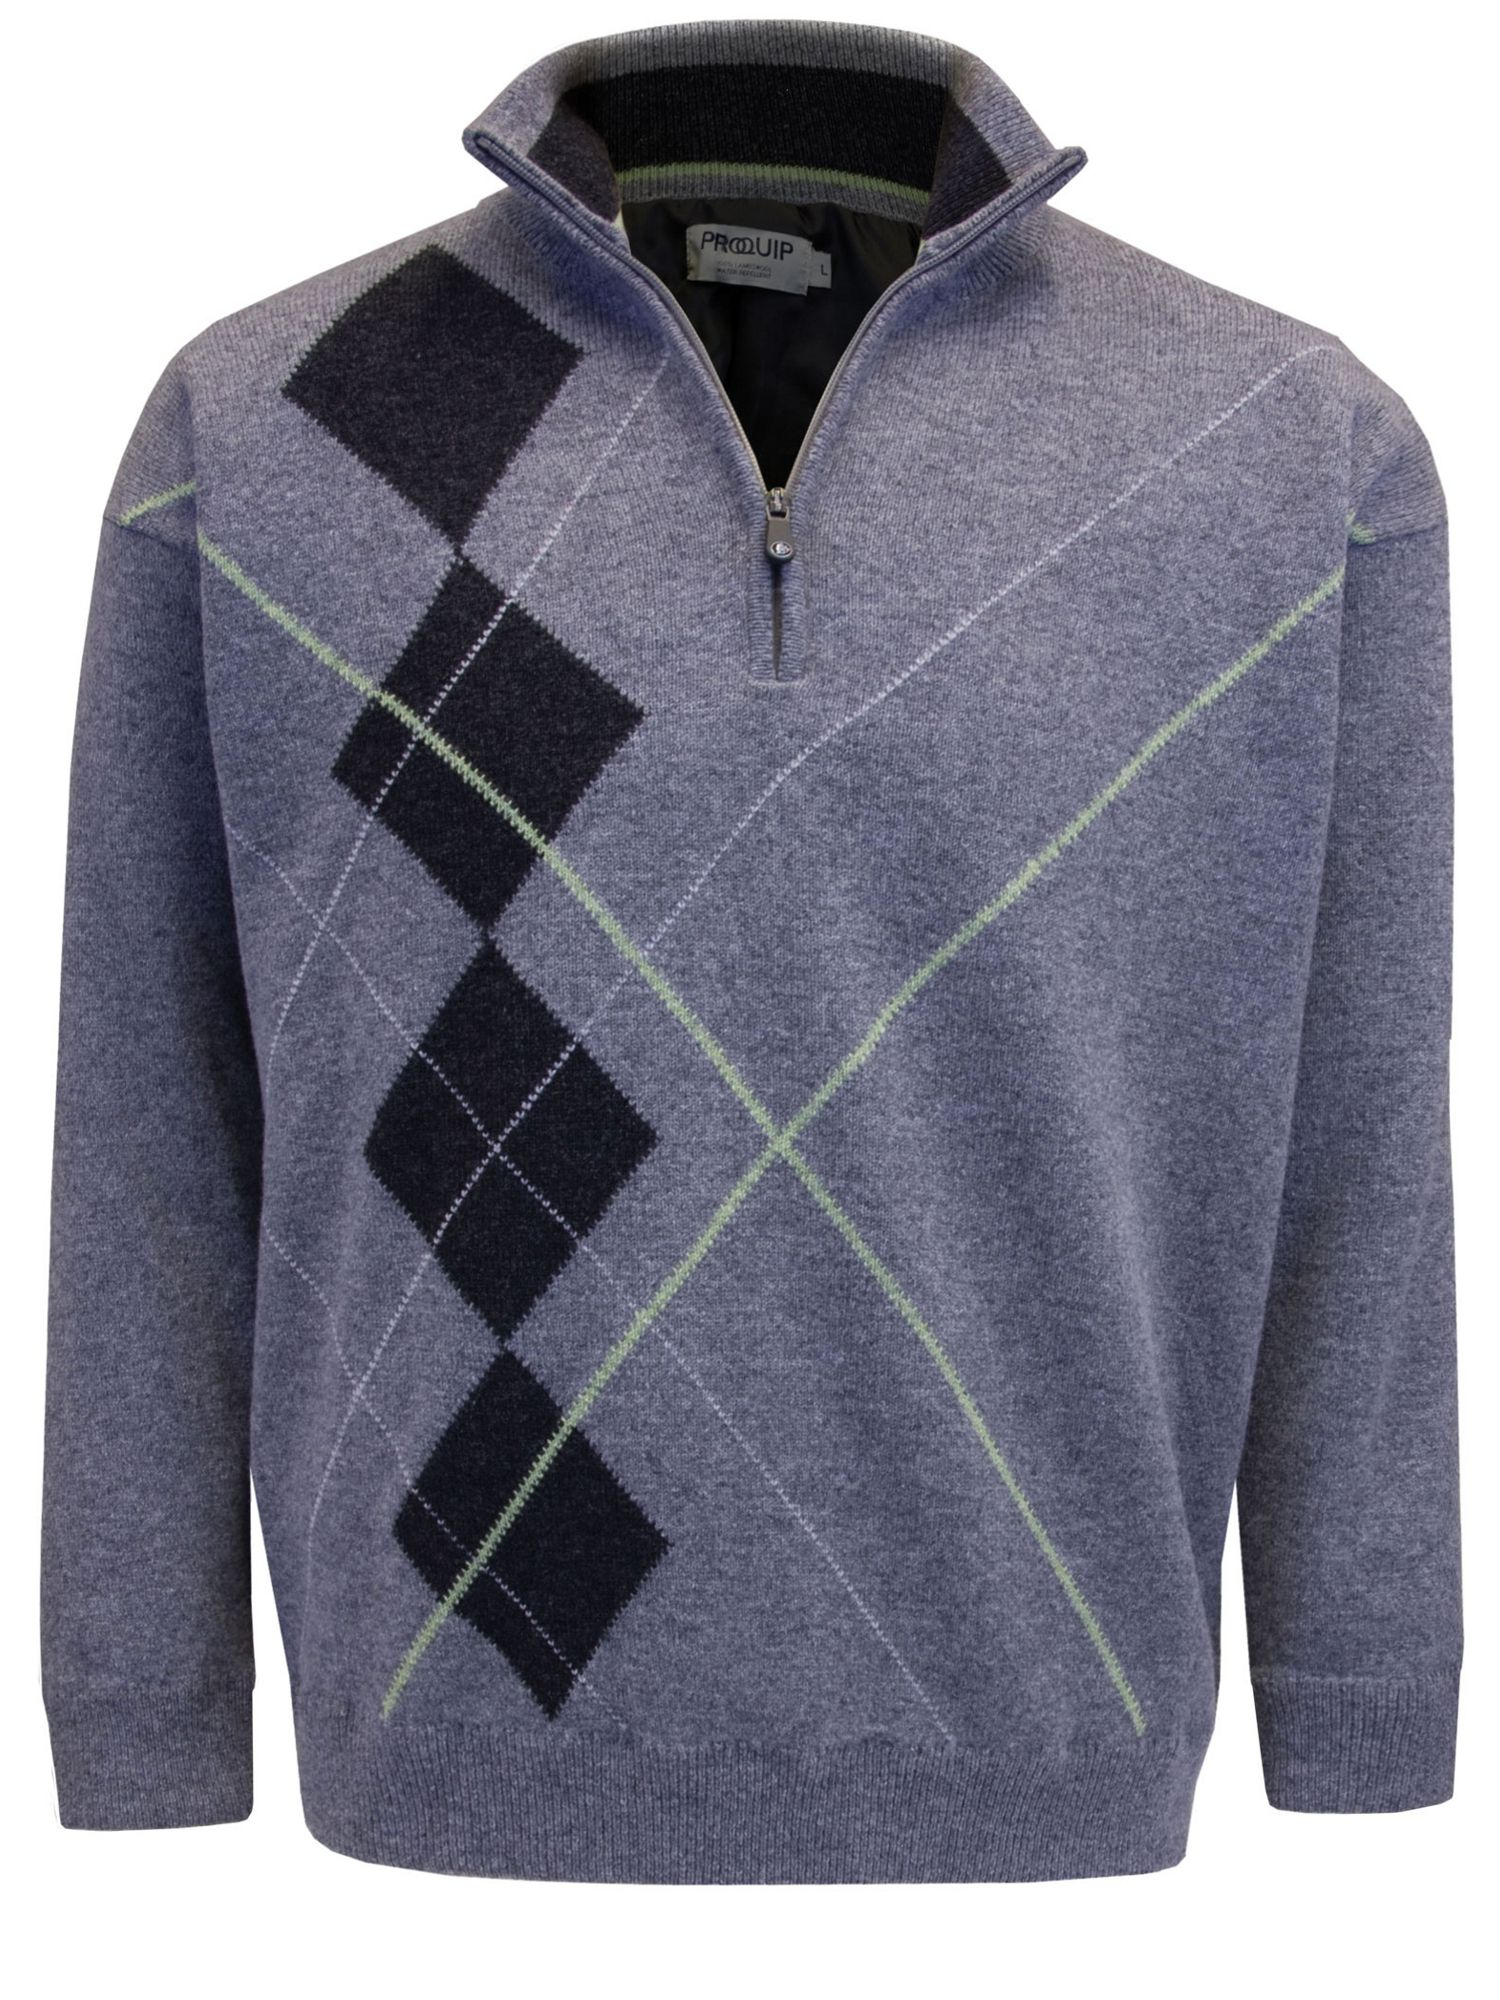 Half zip lined lambswool jumper